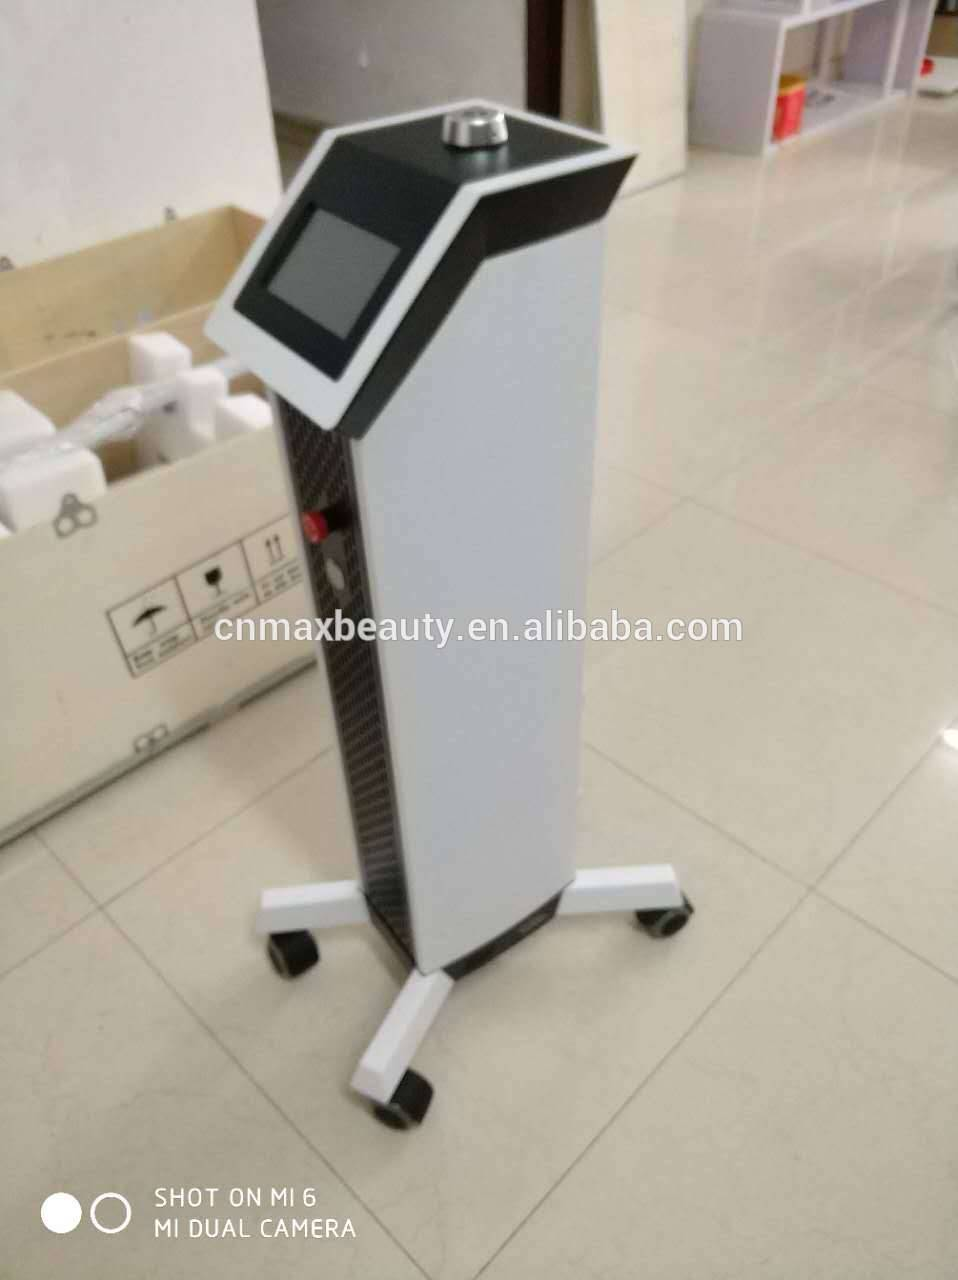 Max beauty 2017 OEM LED light therapy/skin care skin rejuvenation PDT led light therapy machine-M-L01A